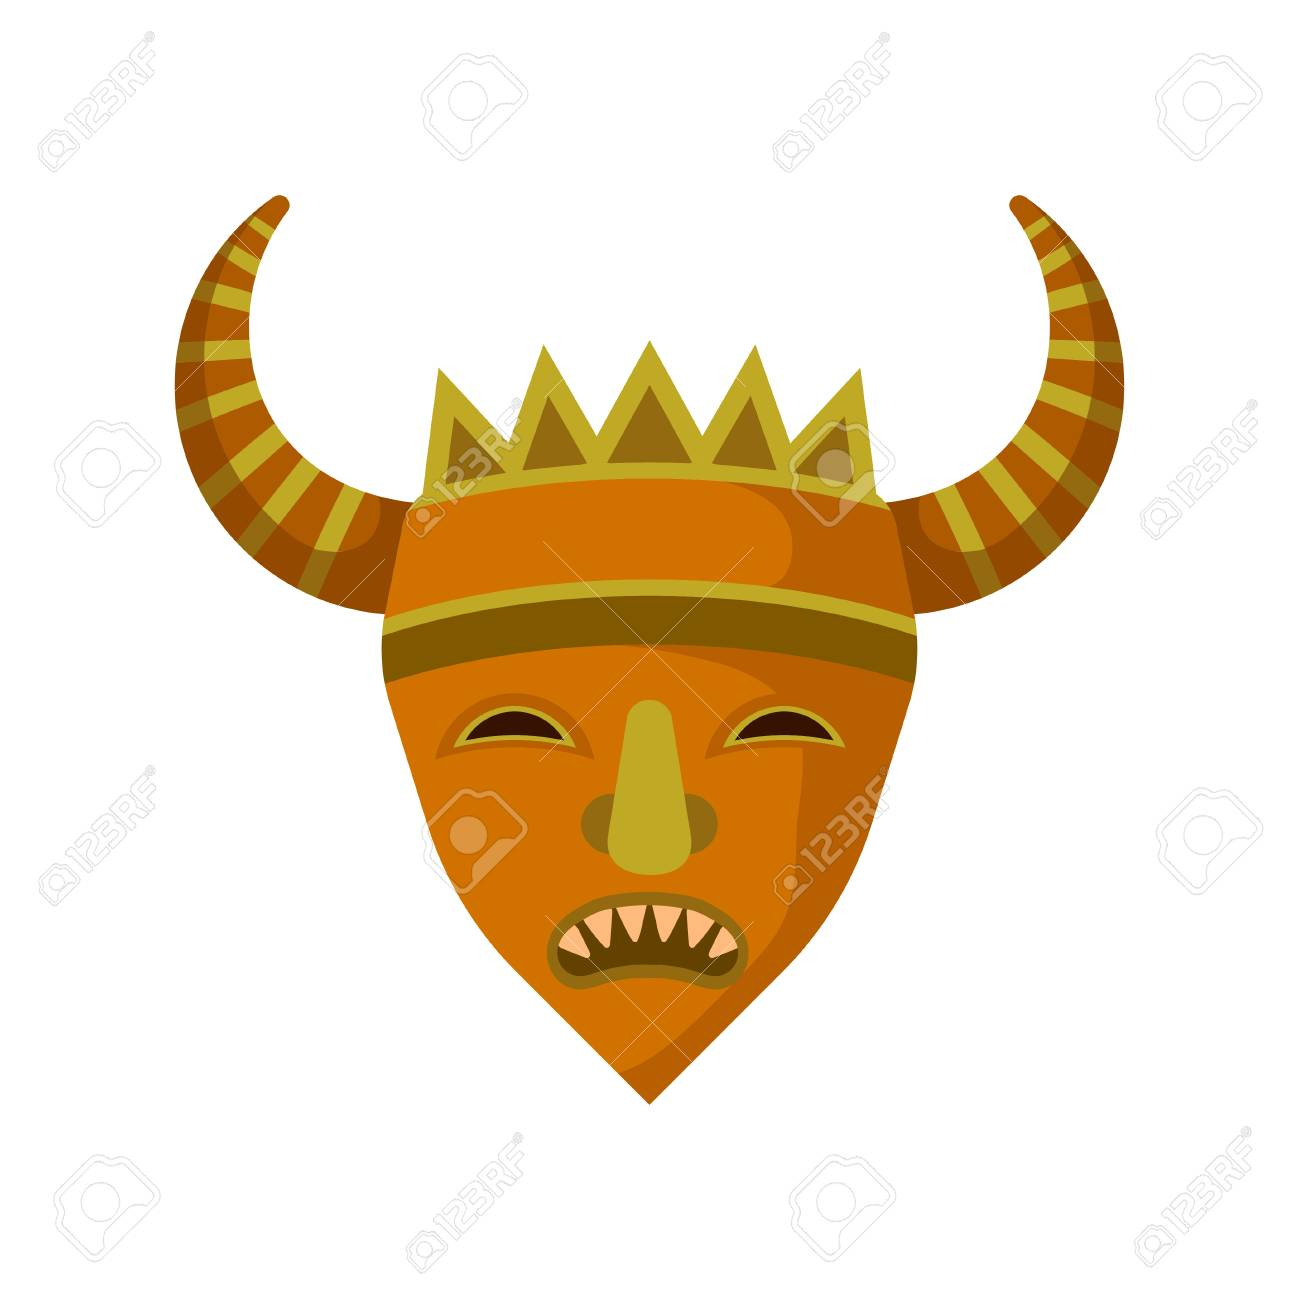 Wooden Mask With Sharp Teeth And Big Horns Ethnic Symbol Of